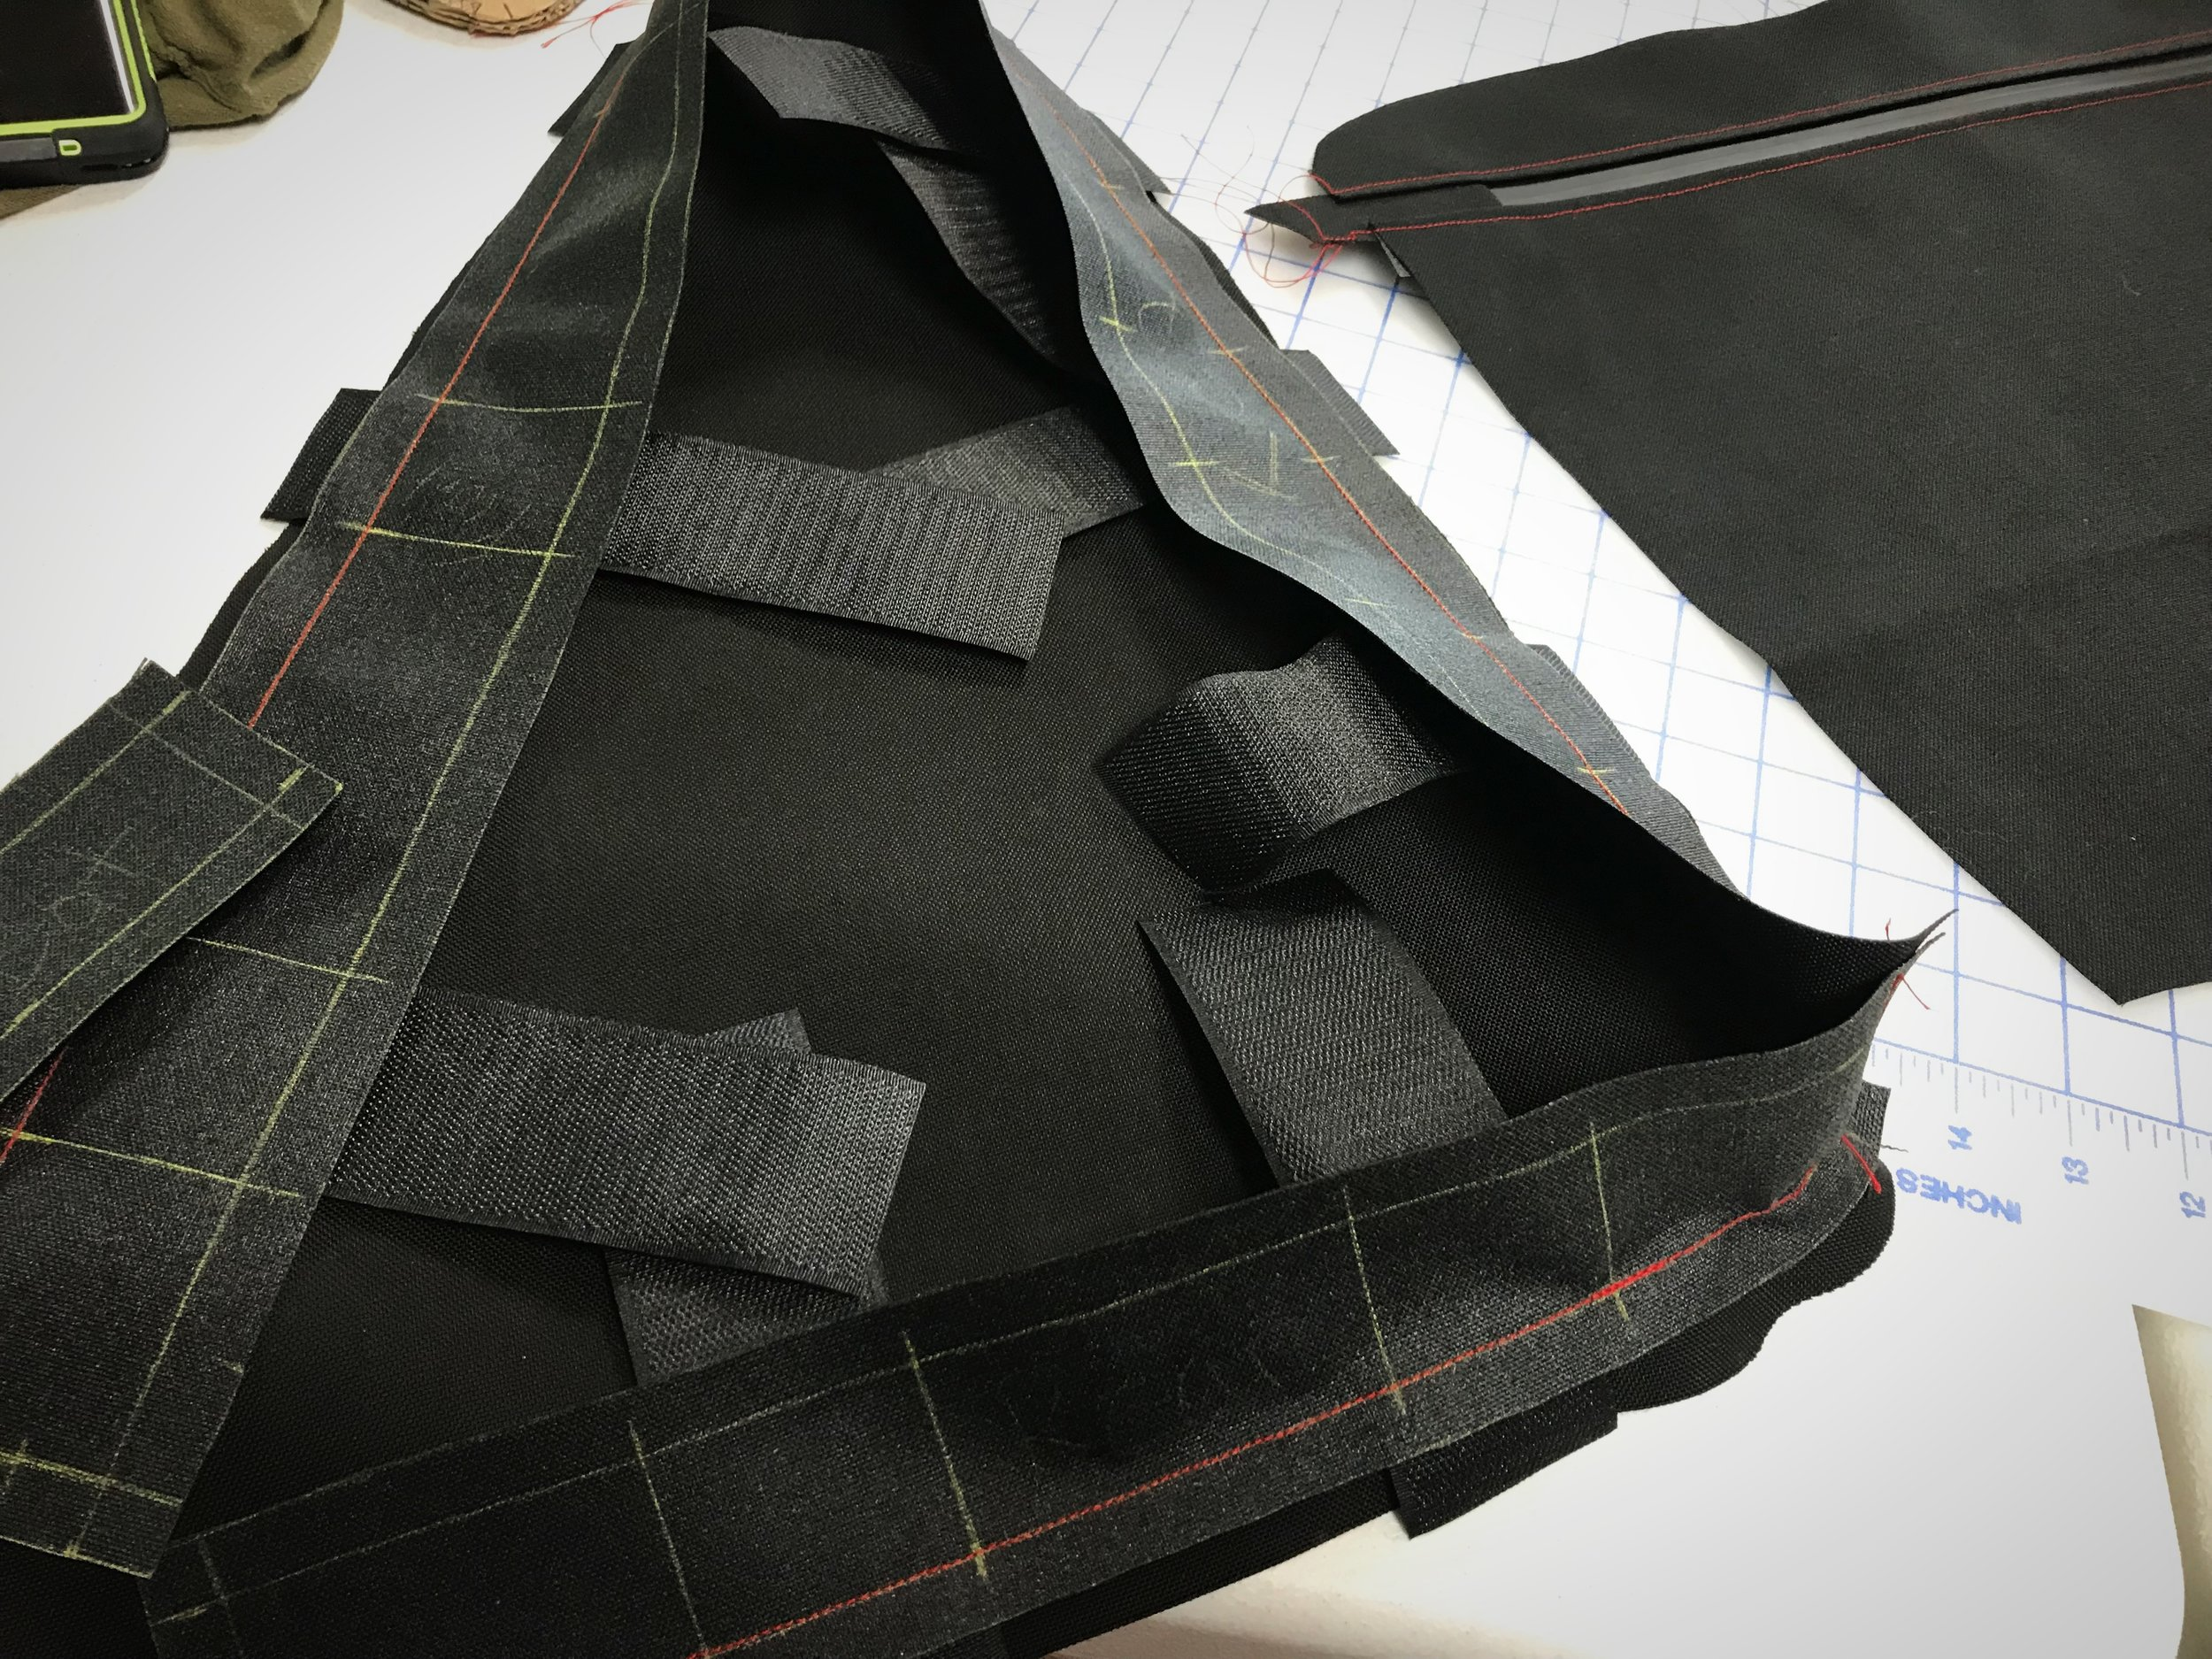 Sew edge piece on all the way around your first side panel, sewing the Velcro into the seam.